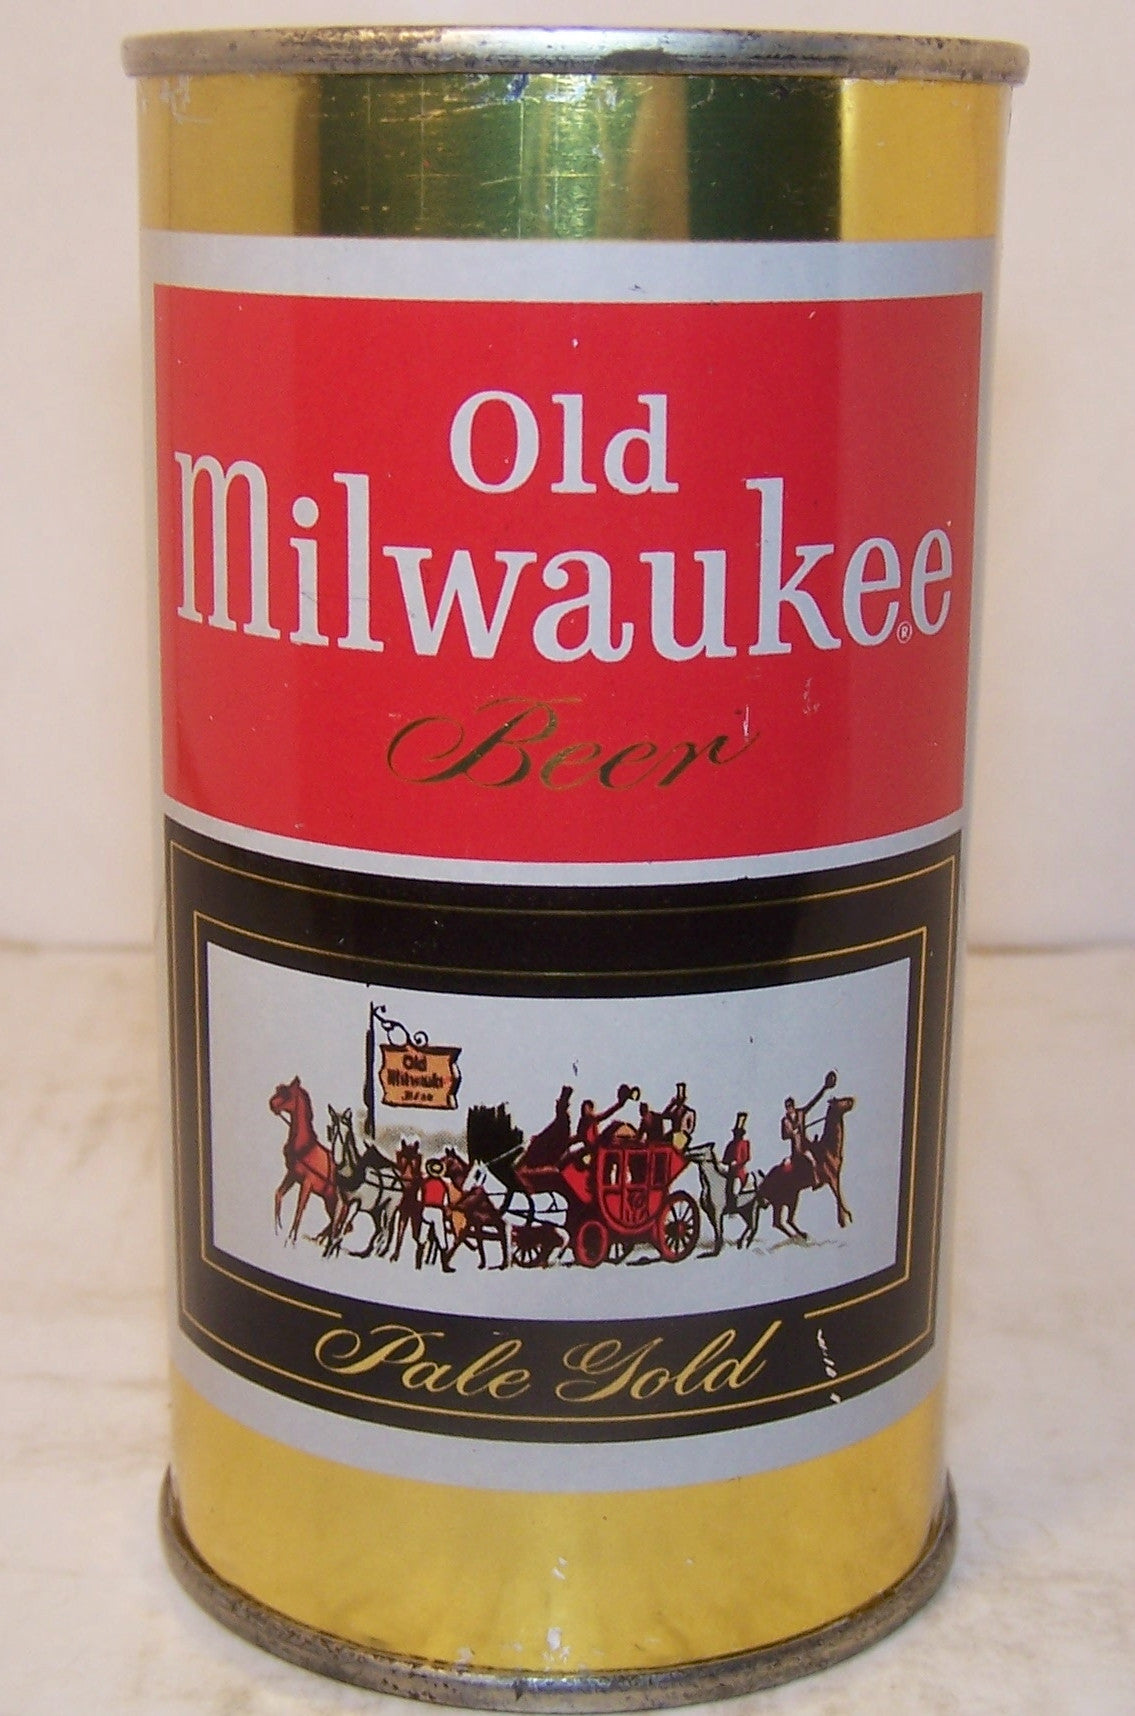 Old Milwaukee Pale Gold, USBC 107-26, Grade A1+ Sold 3/7/15